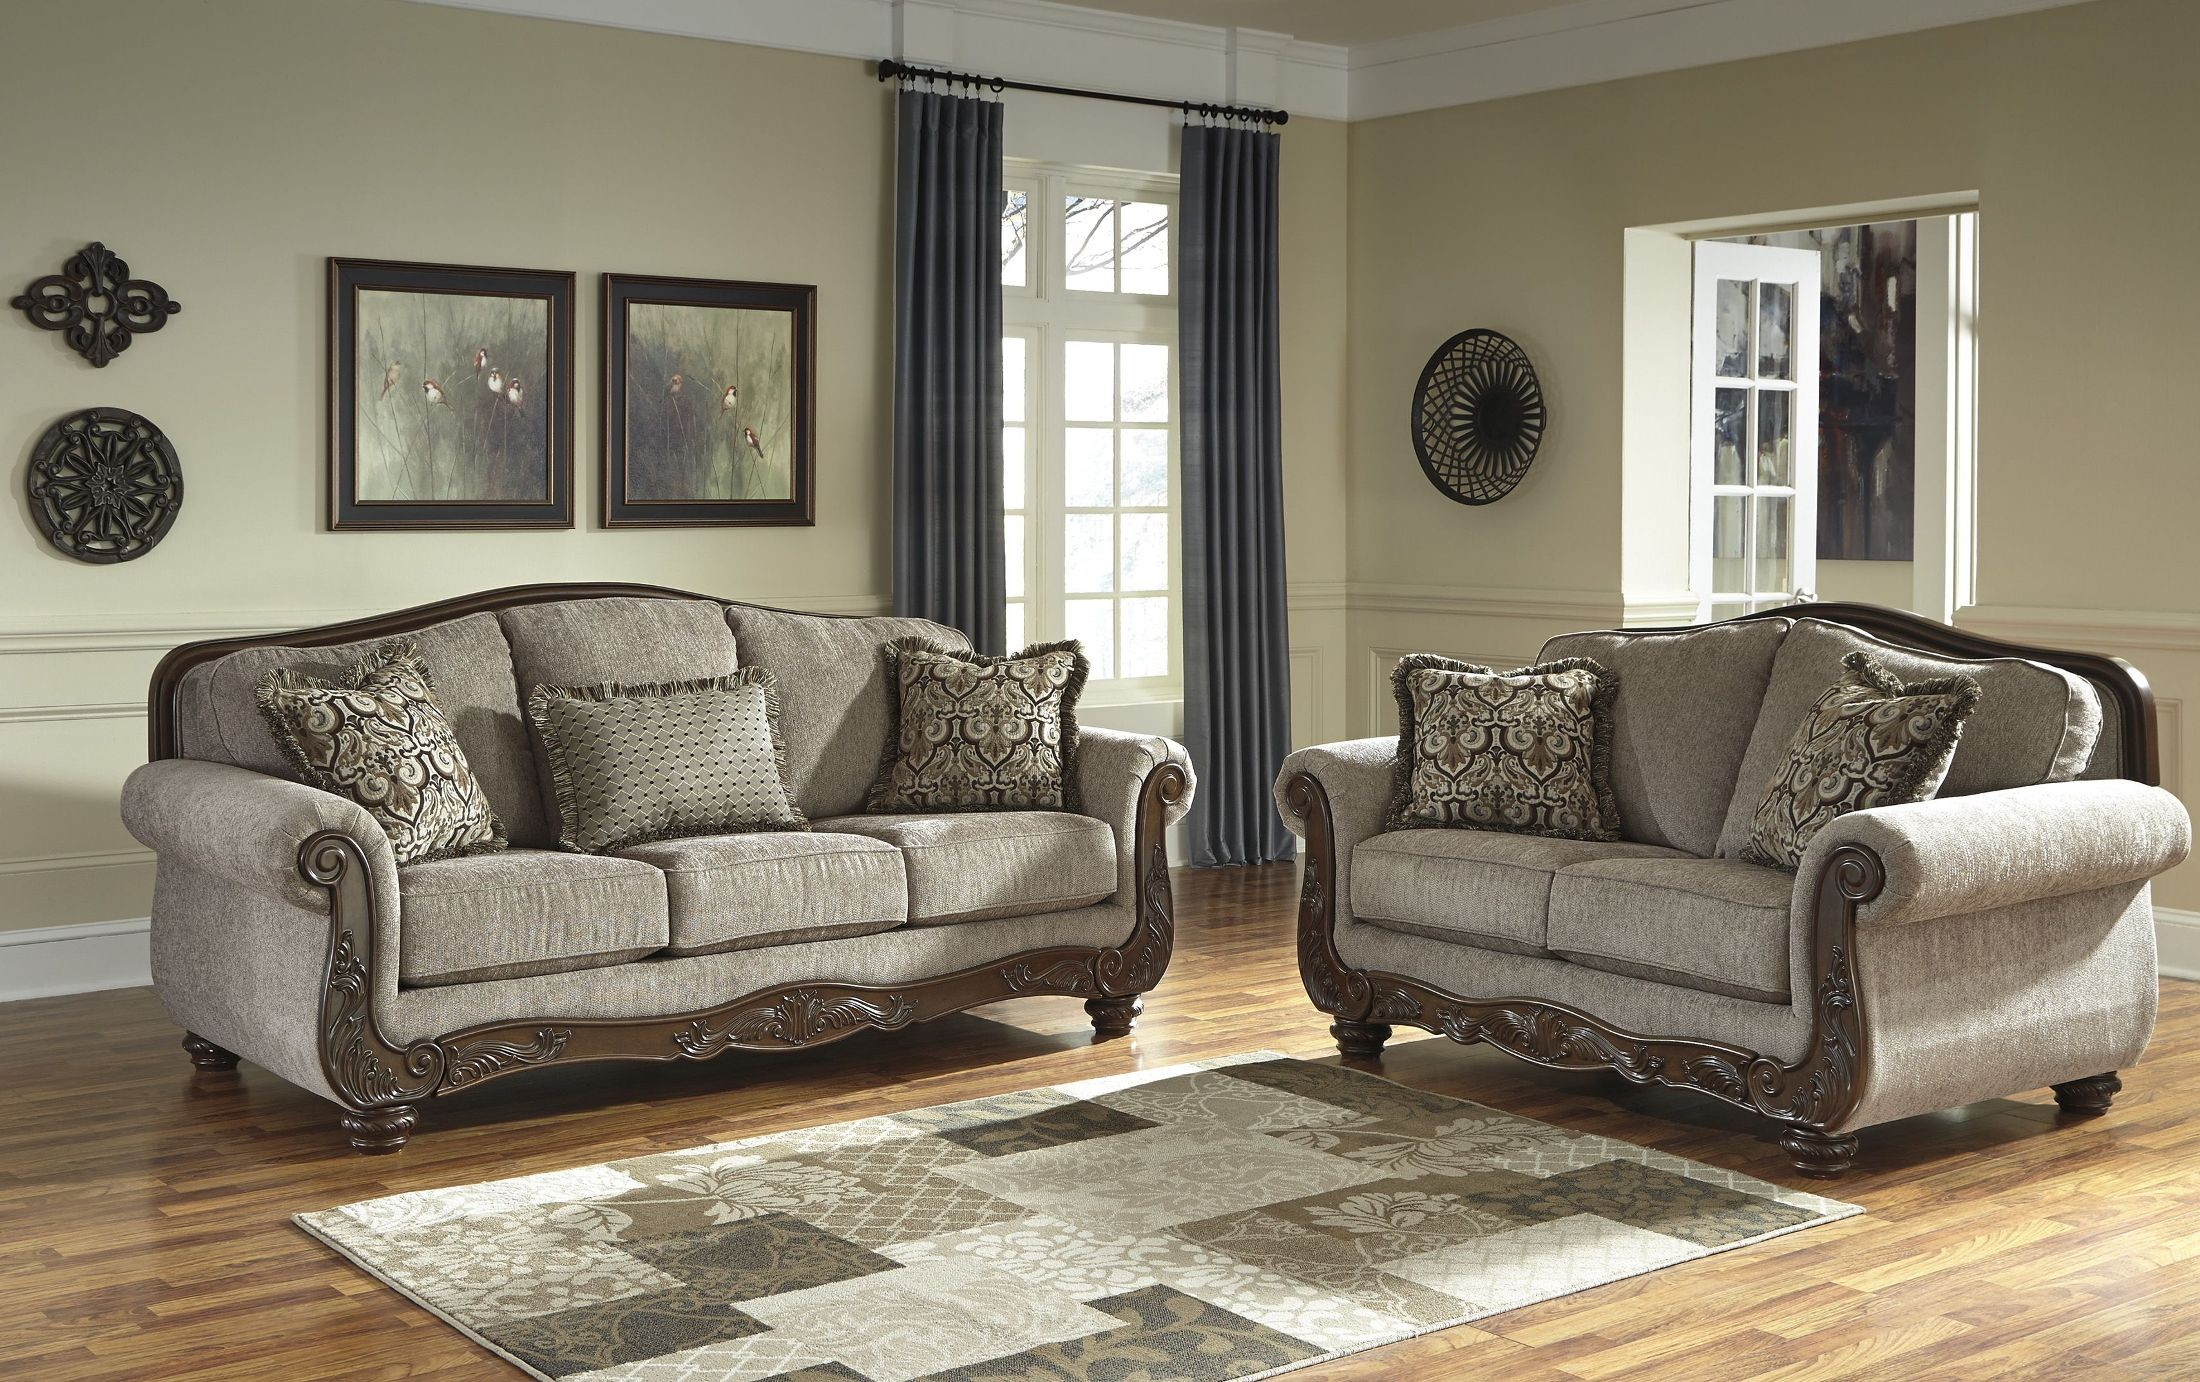 Cecilyn Cocoa Living Room Set from Ashley (5760338 ...